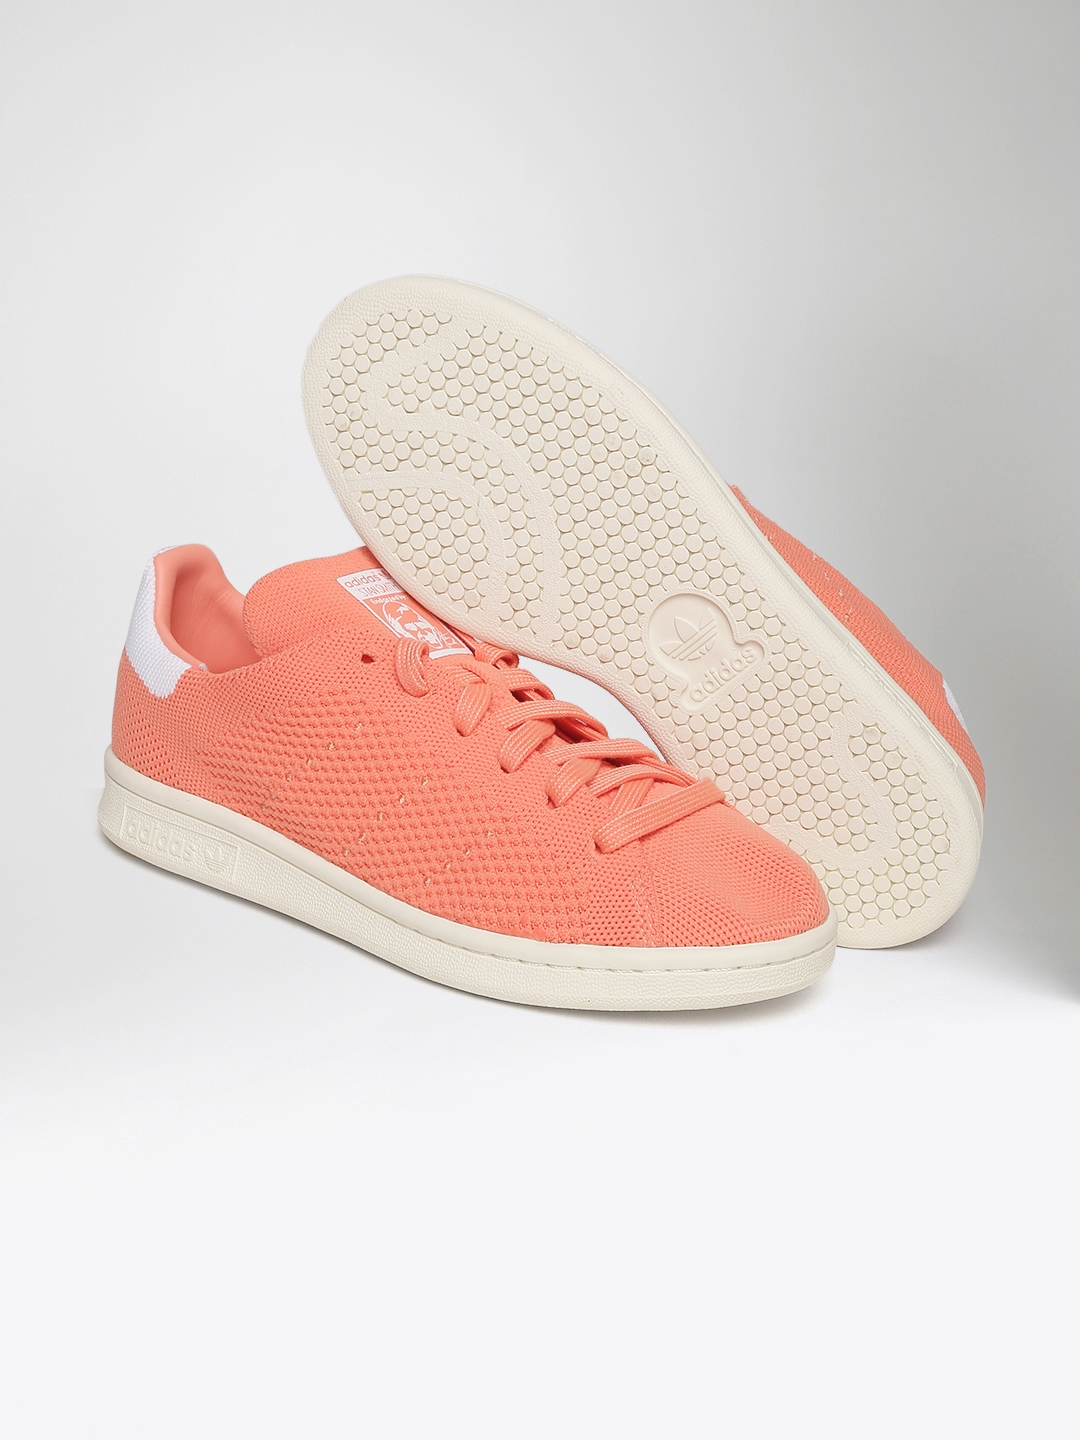 ADIDAS Originals Women Peach-Coloured Stan Smith Prime Knit Sneakers 5749927c27